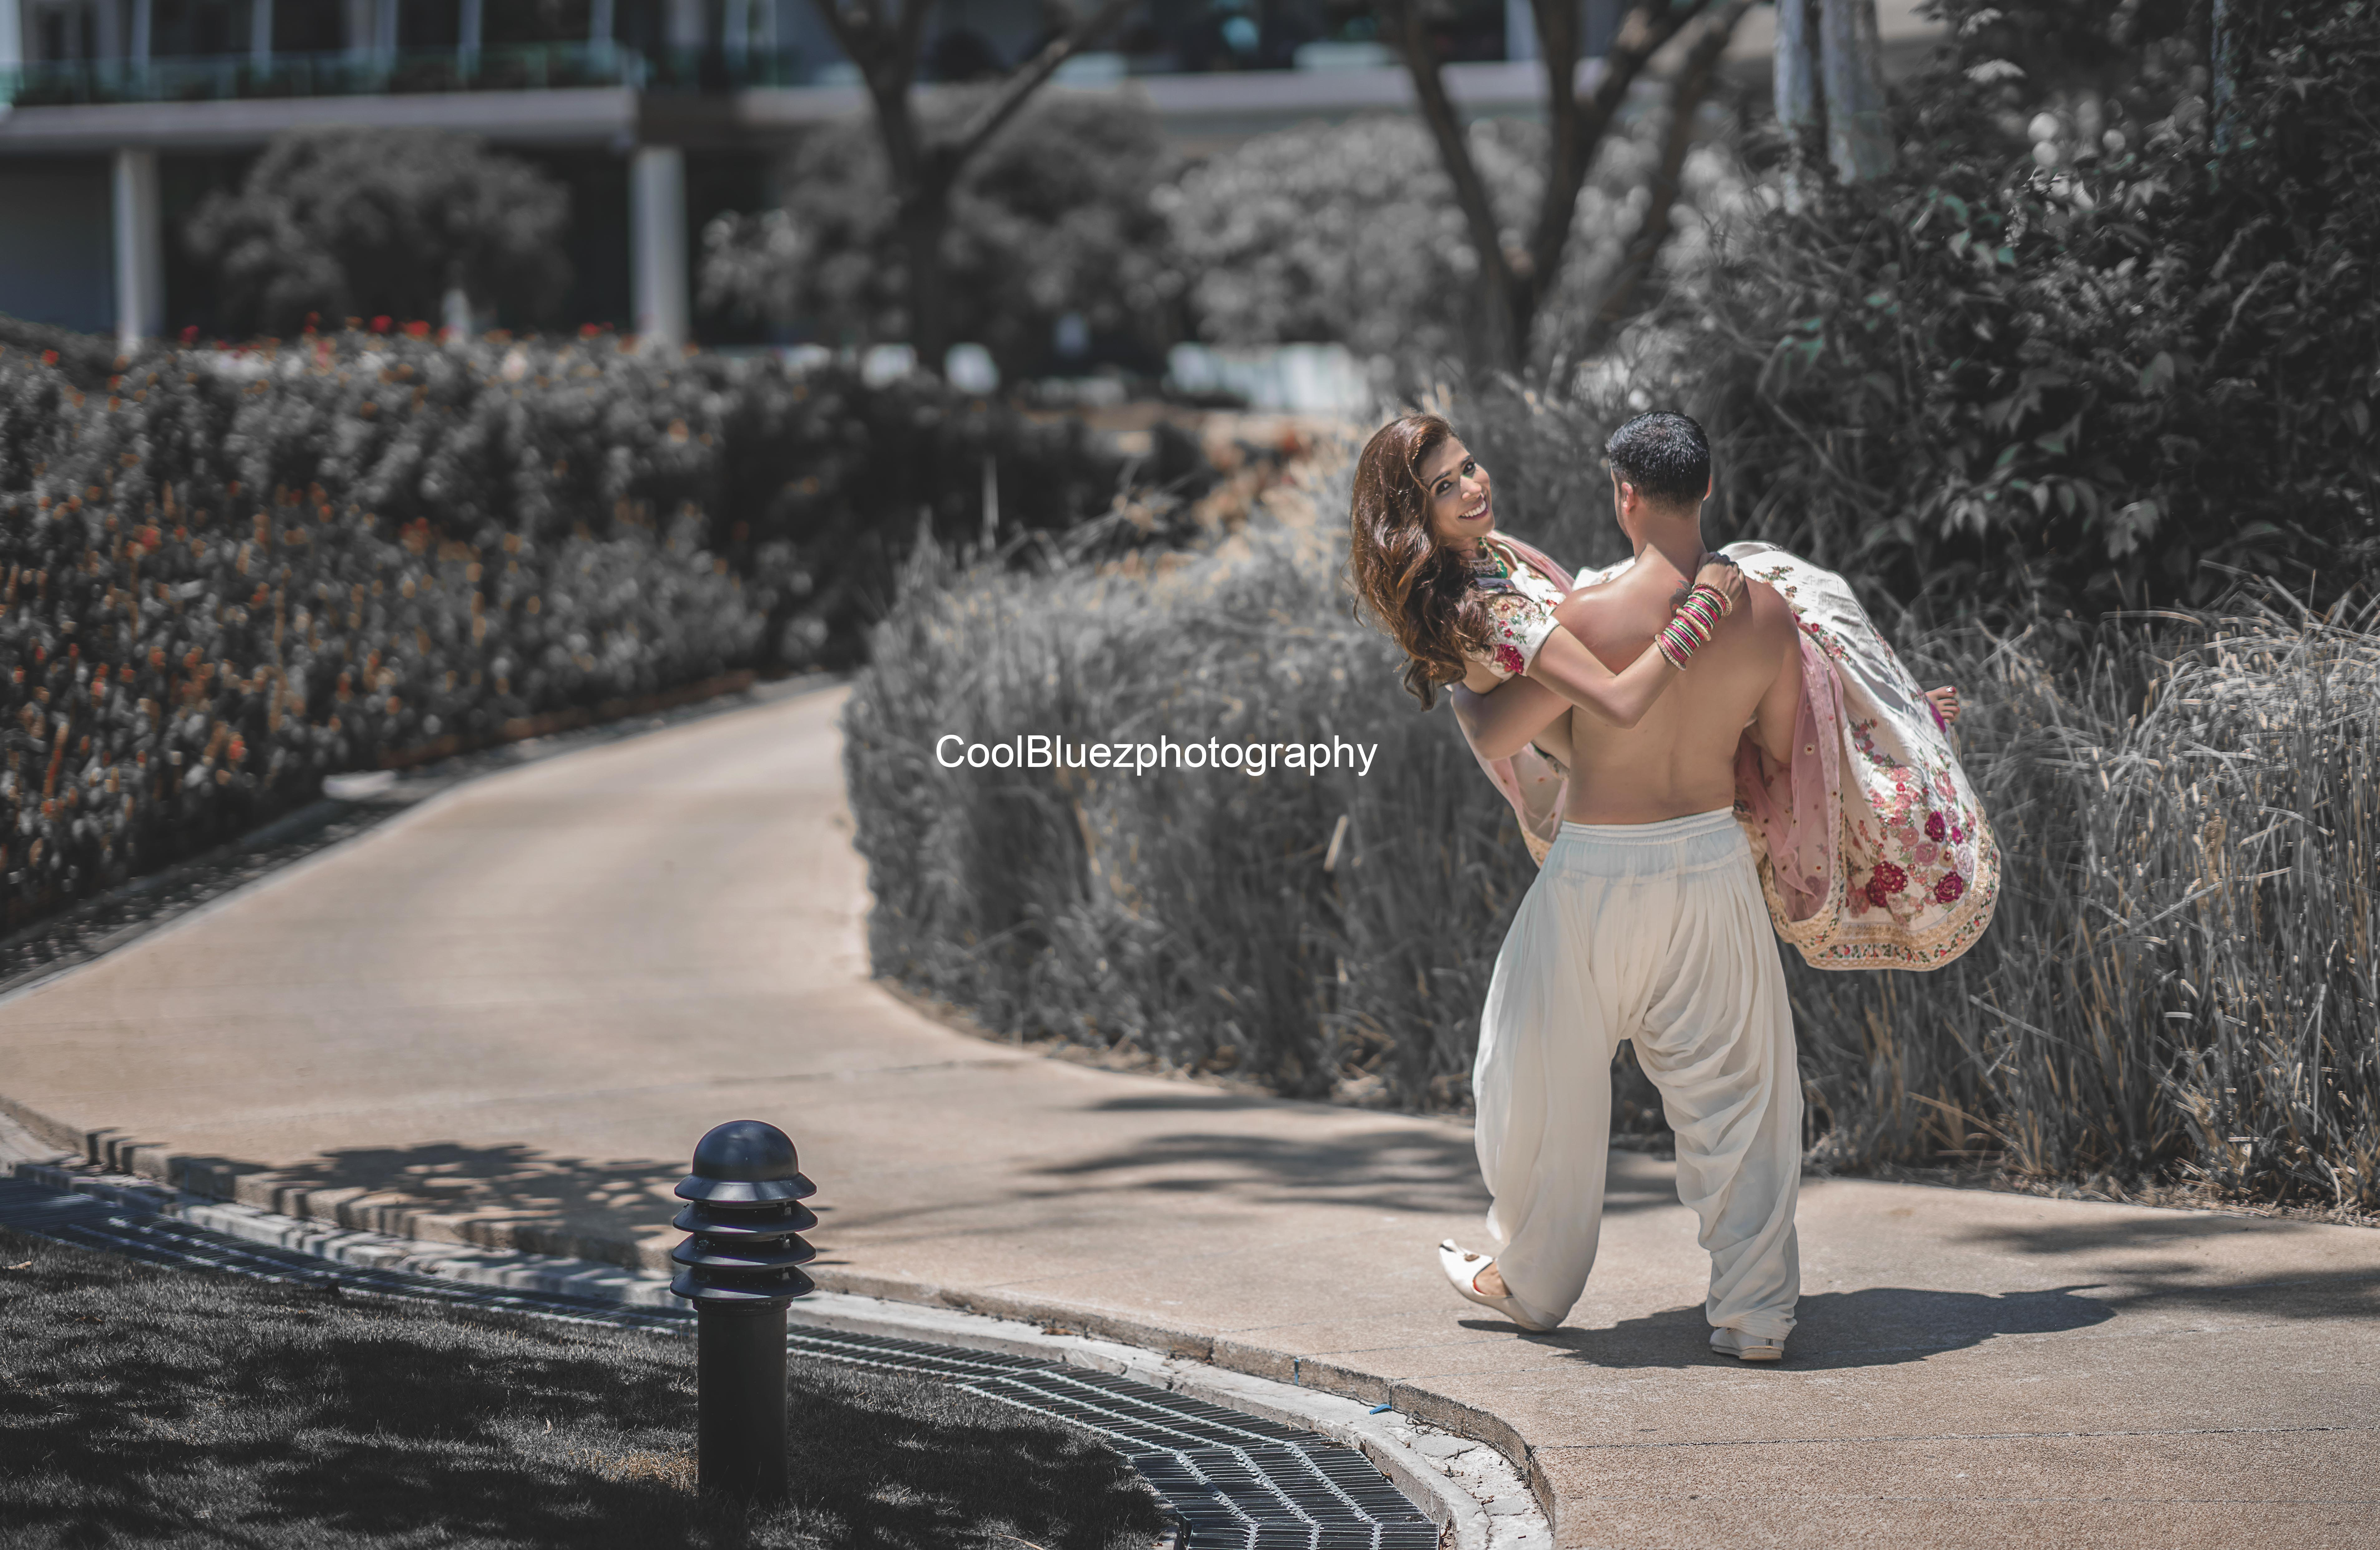 6 pre wedding shoot by Coolbluez photography